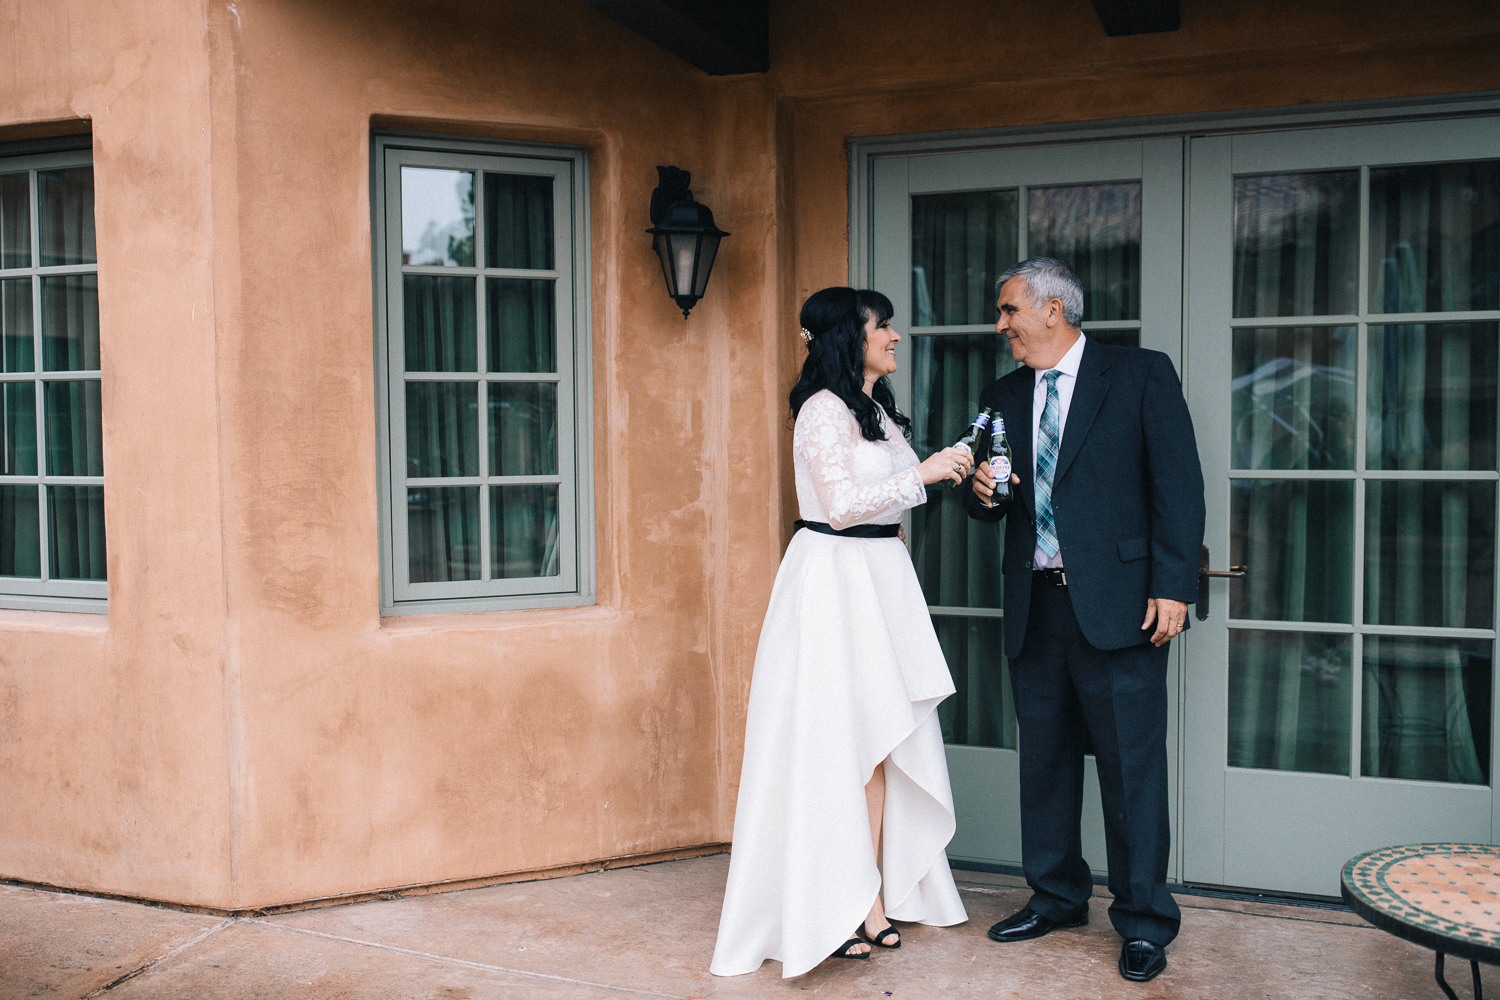 2019_05_ 182019.05.19 Lisa + Eddie South Bay Wedding Blog Photos Edited For Web 0053.jpg